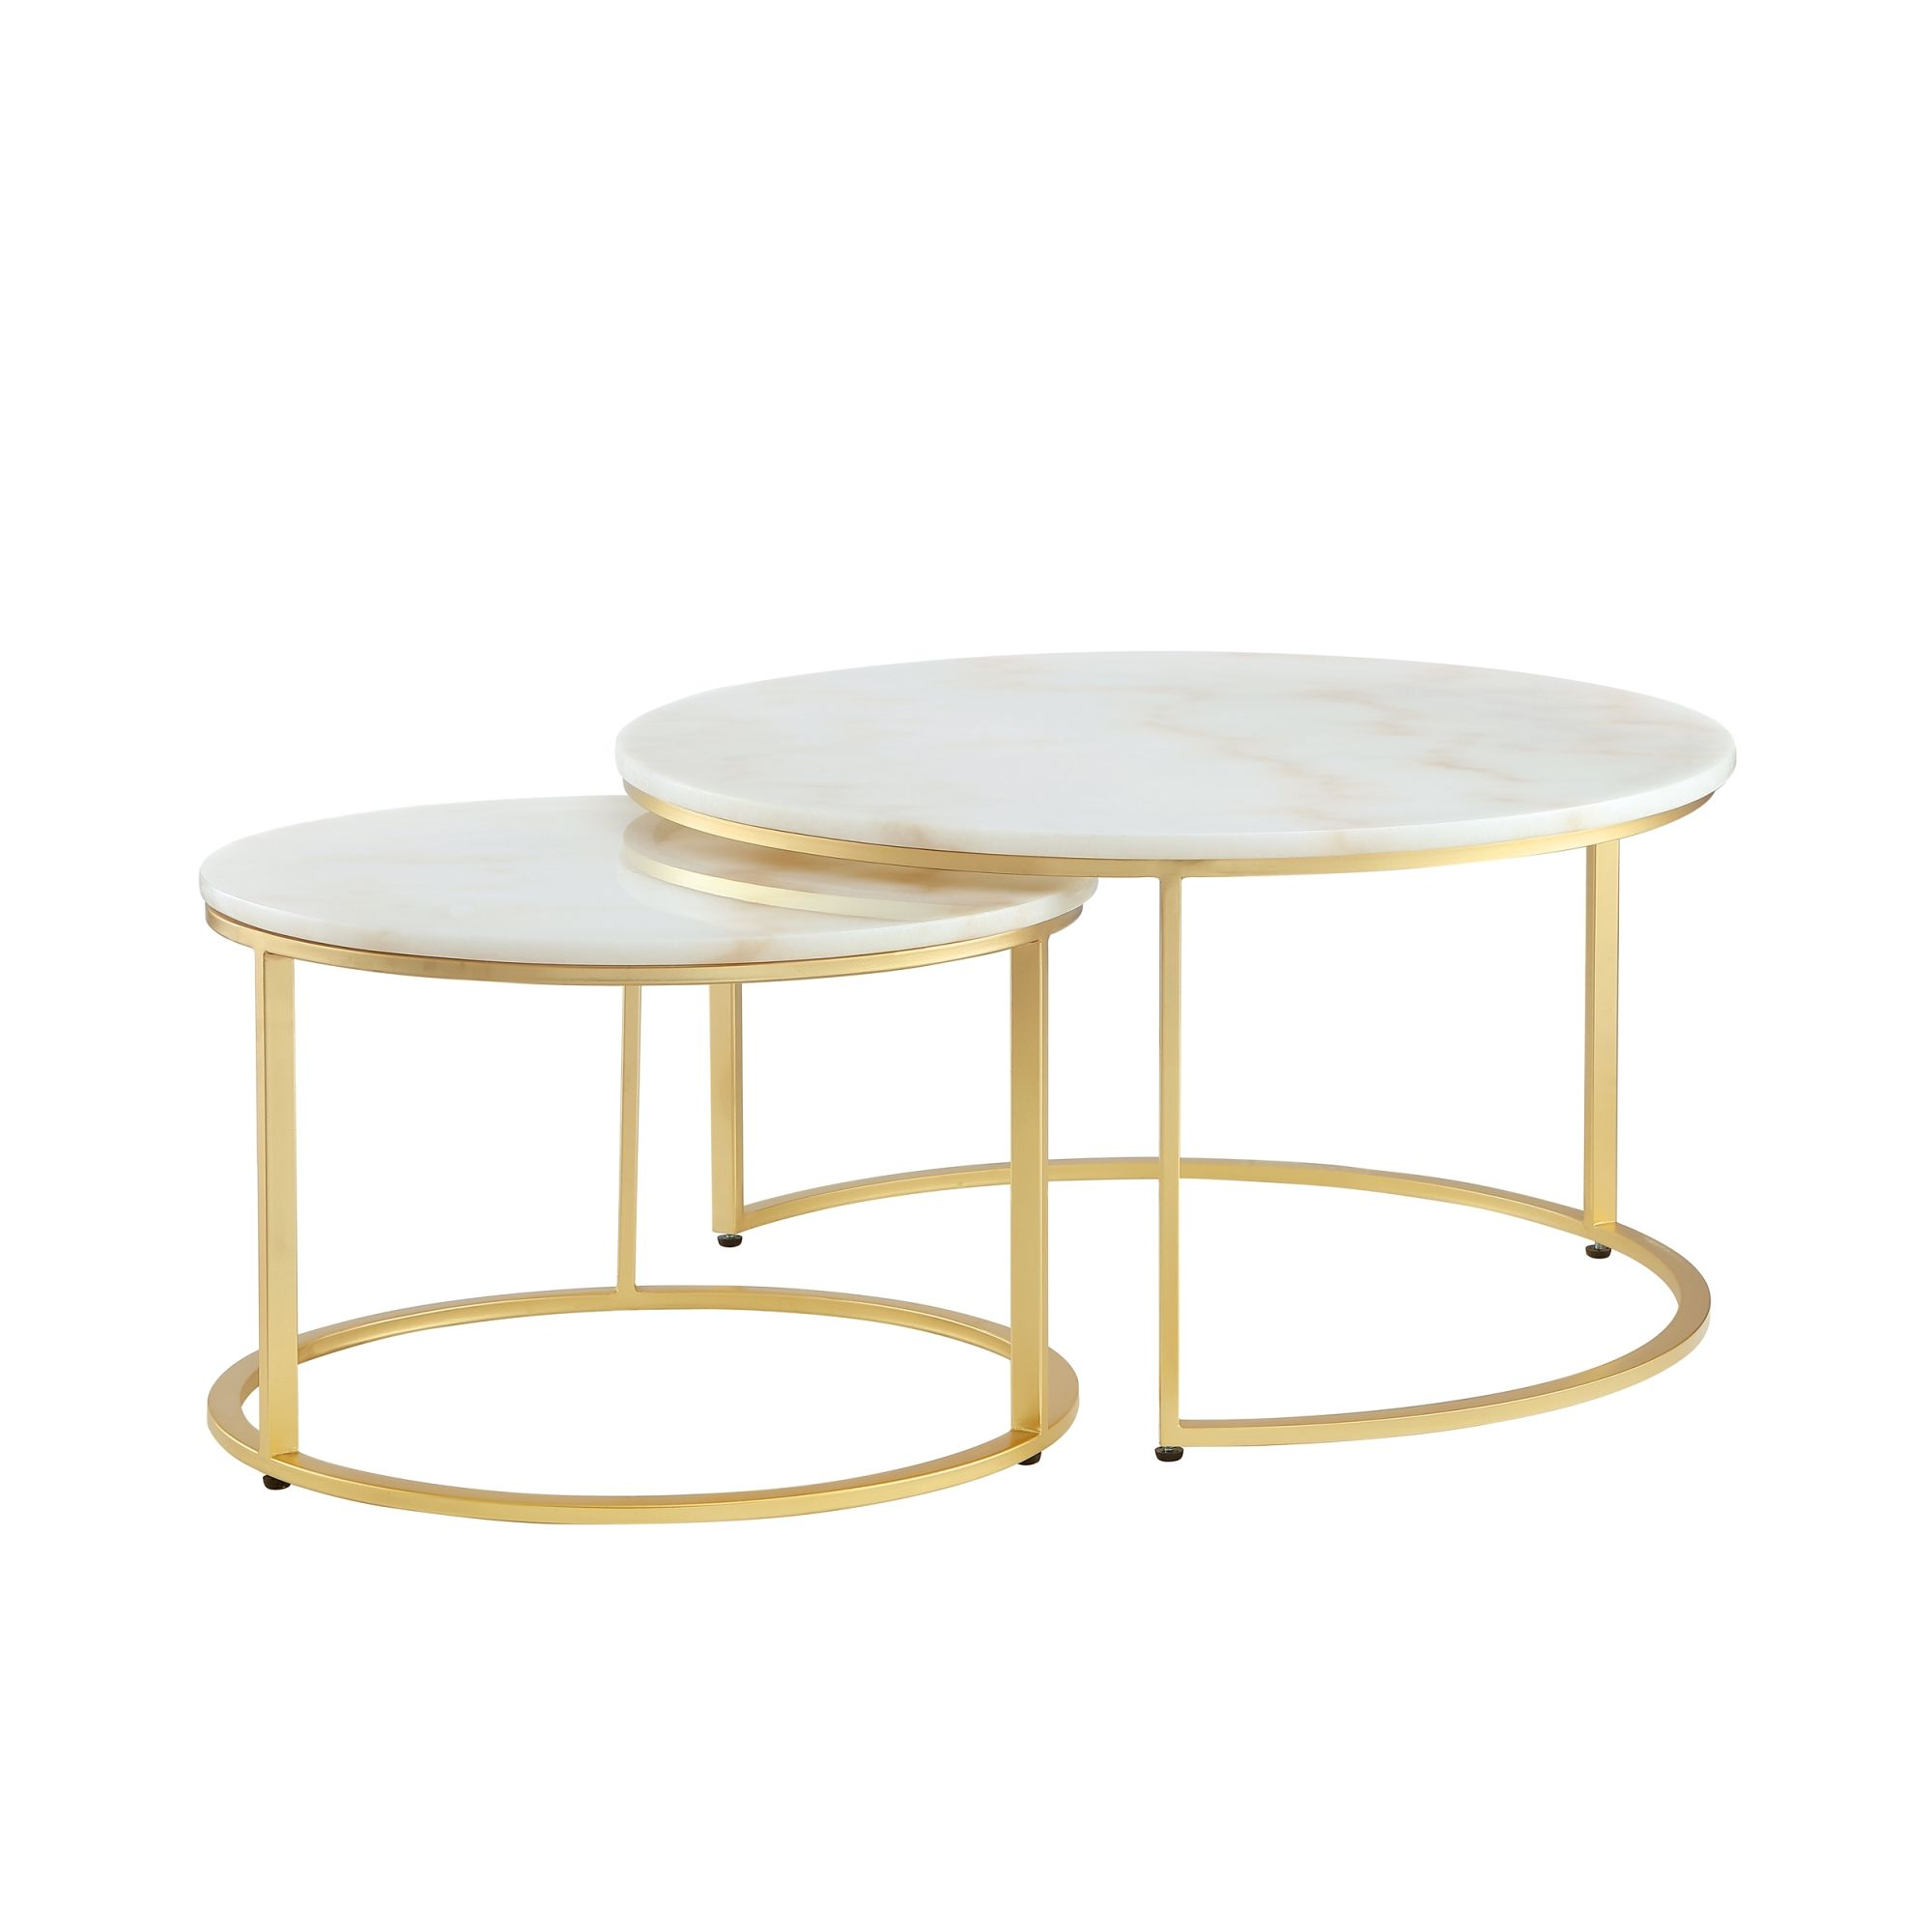 Irene Round Top Nesting Coffee Table In 2021 Marble Coffee Table Coffee Table Coffee Table Metal Frame [ 2000 x 2000 Pixel ]